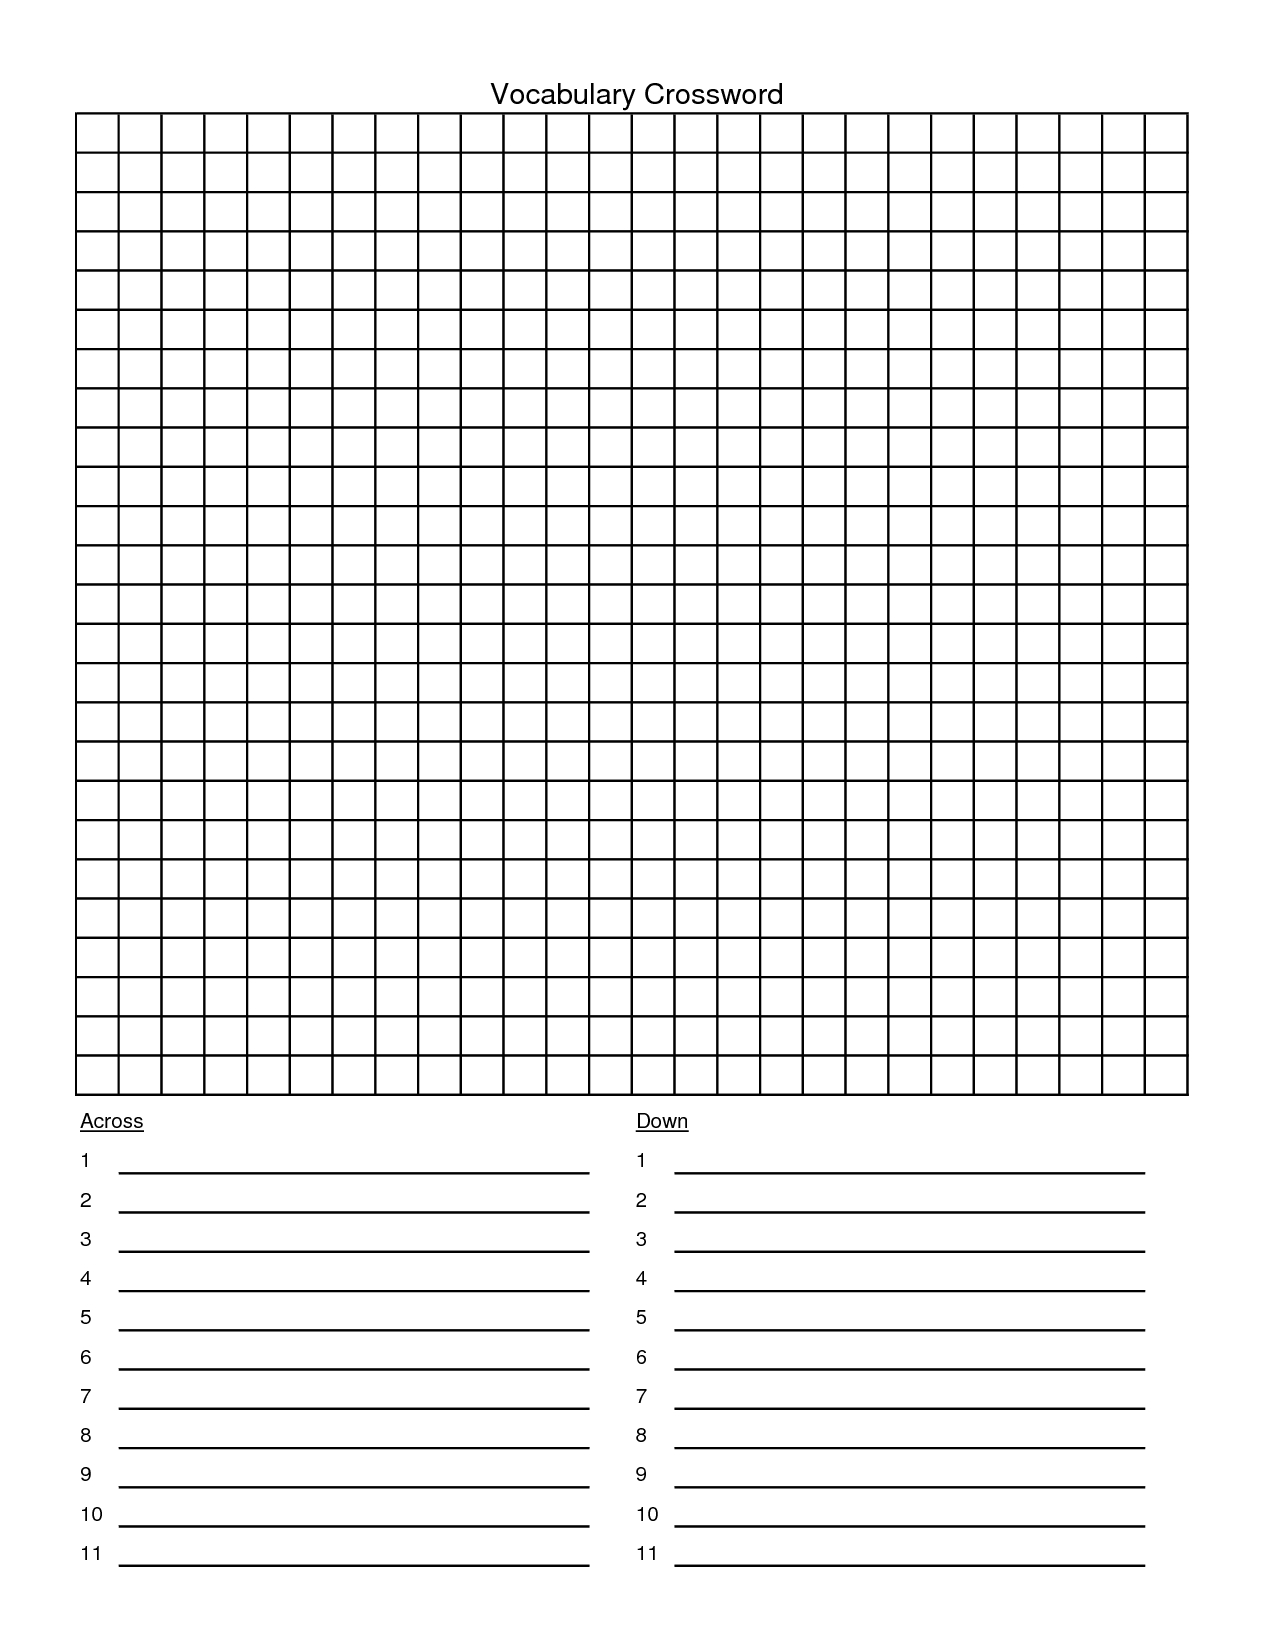 Crossword Puzzle Template - Yapis.sticken.co - Printable Blank Crossword Puzzle Template